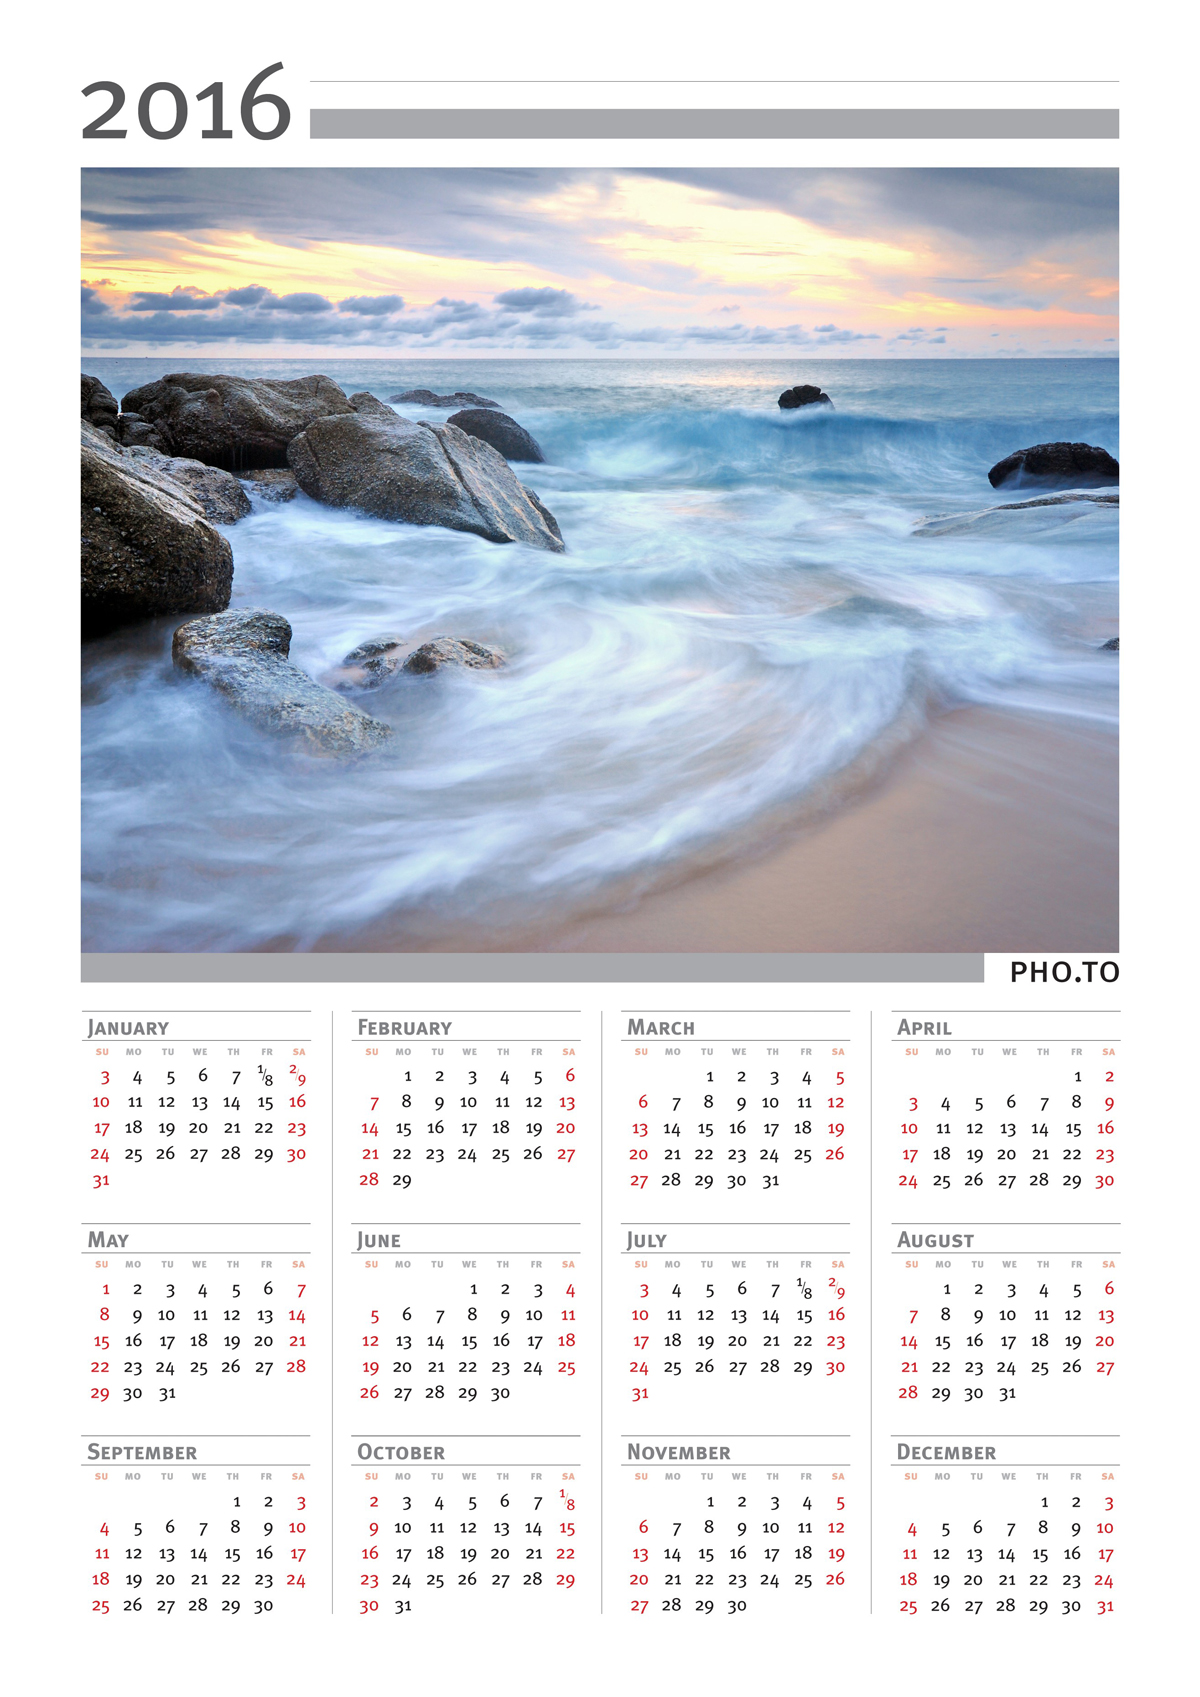 A portrait photo calendar made with personalized editing tool.